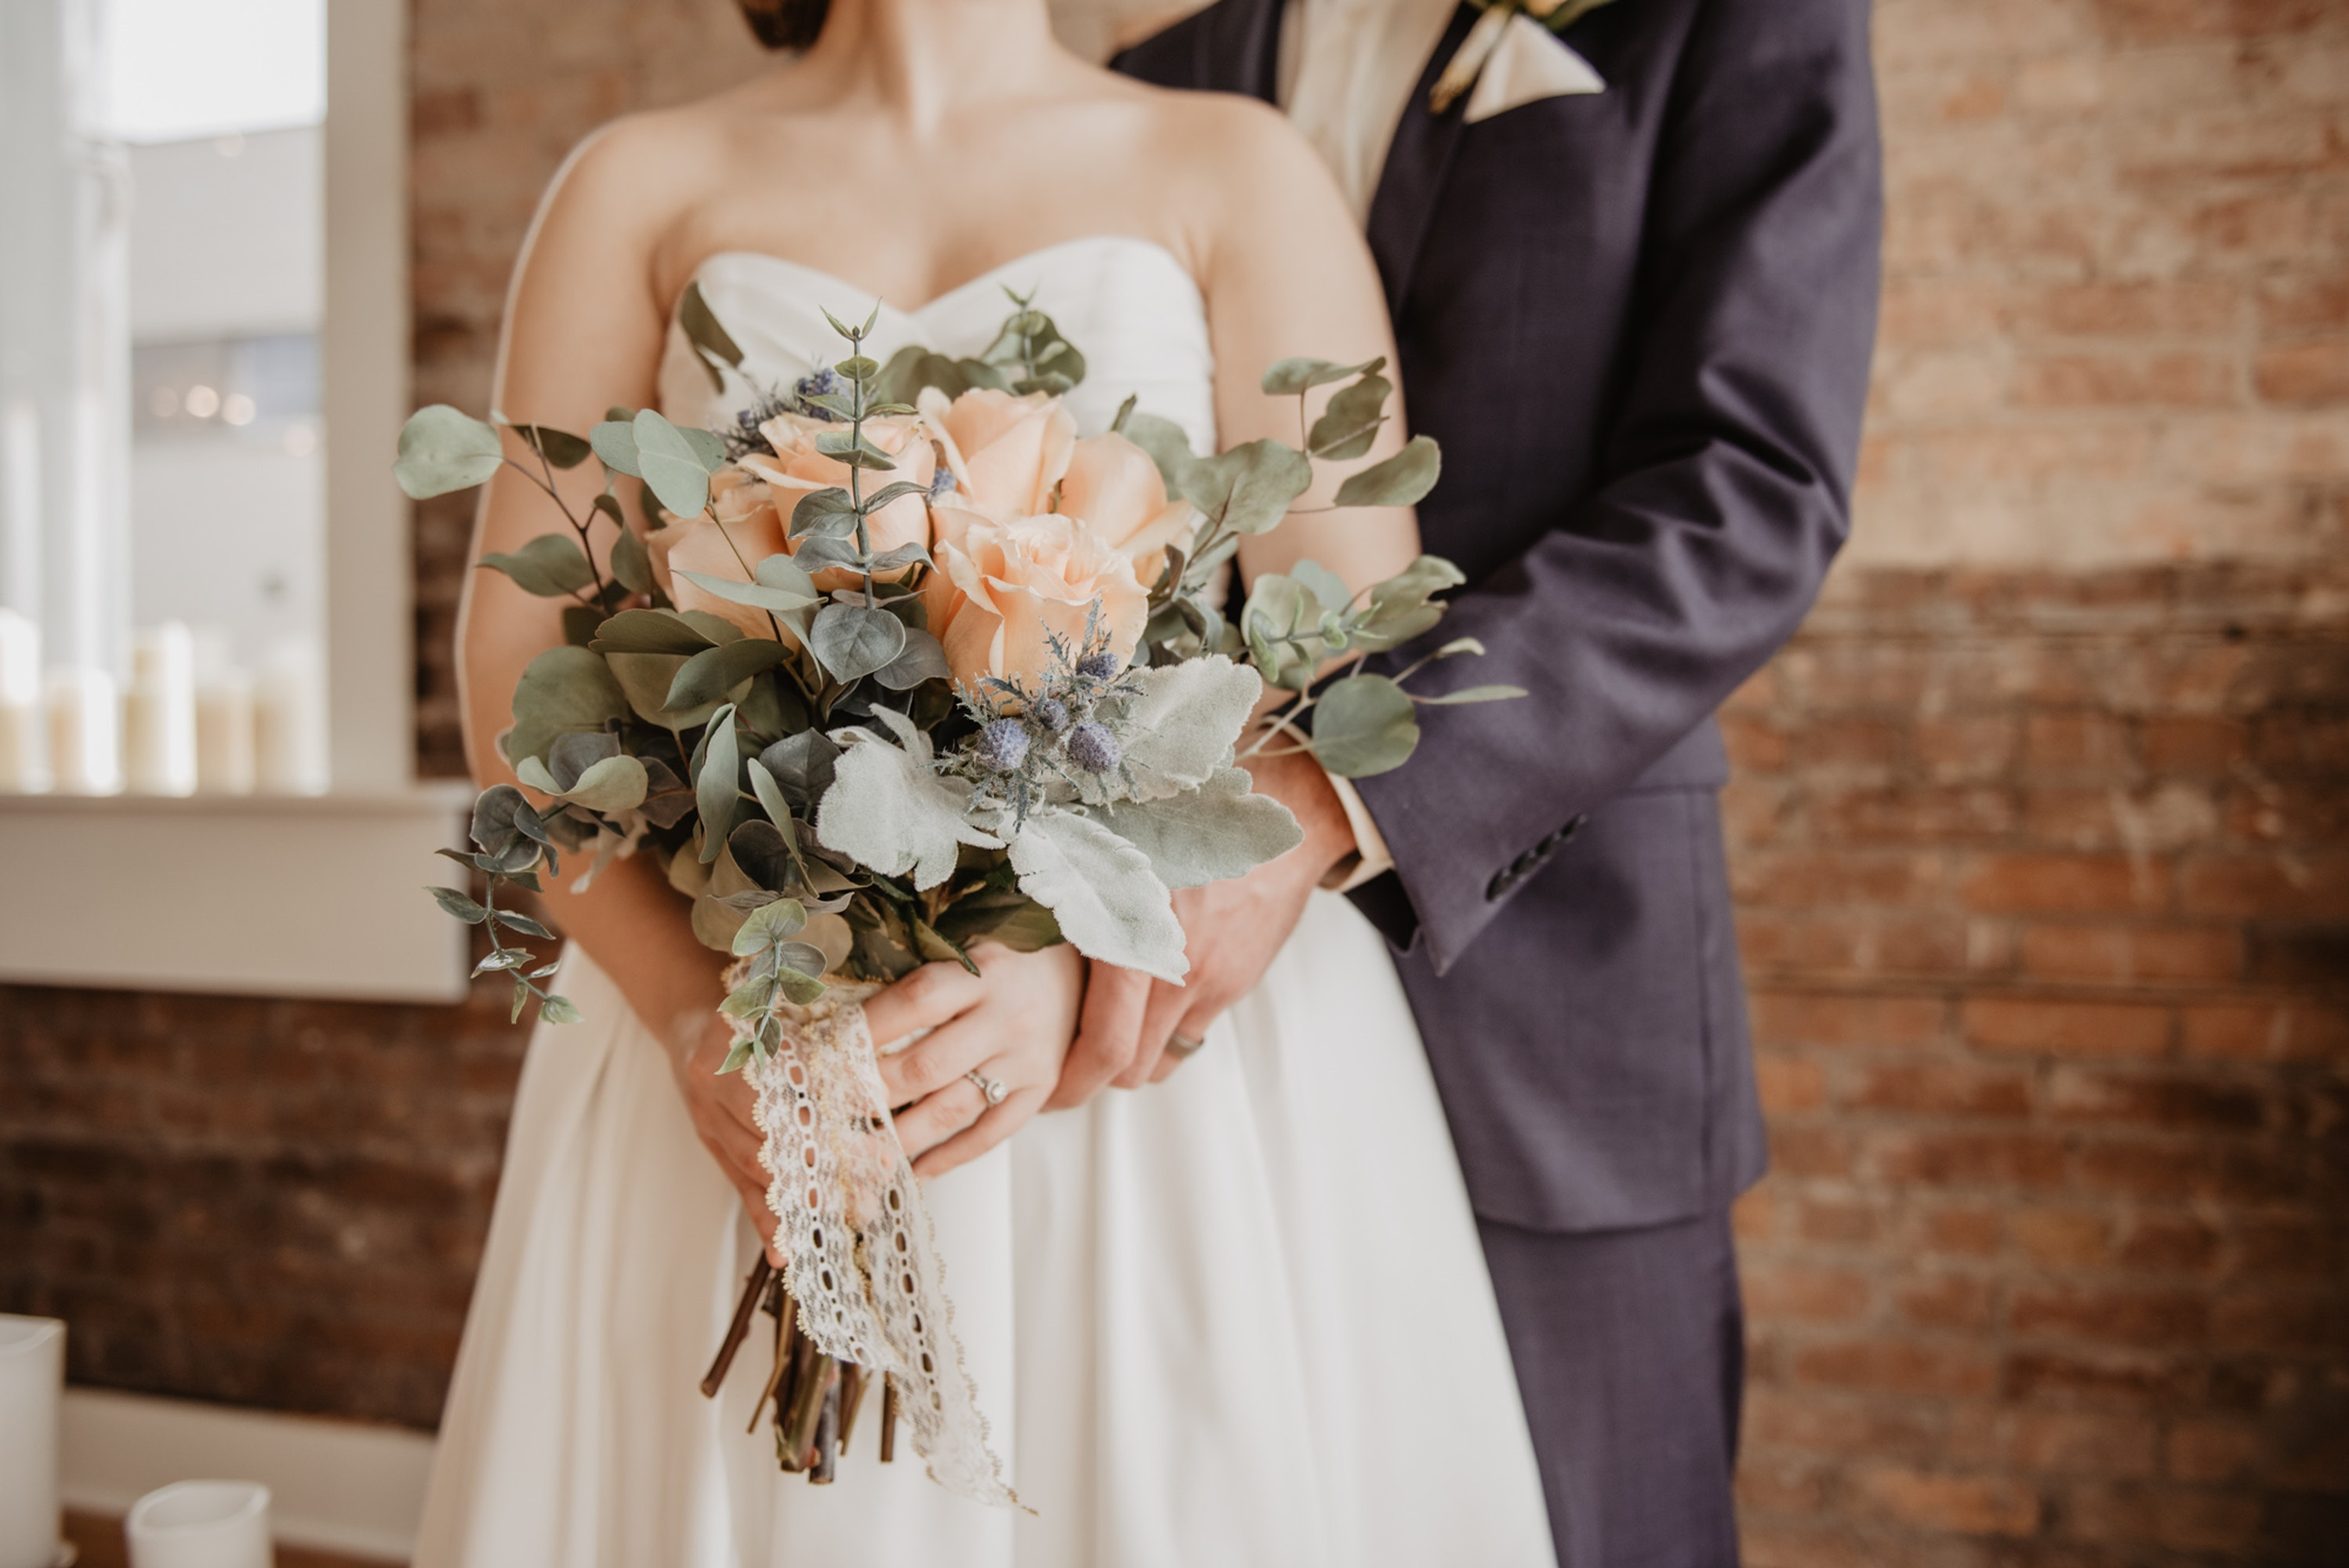 Officiant Service + Rehearsal (Local)